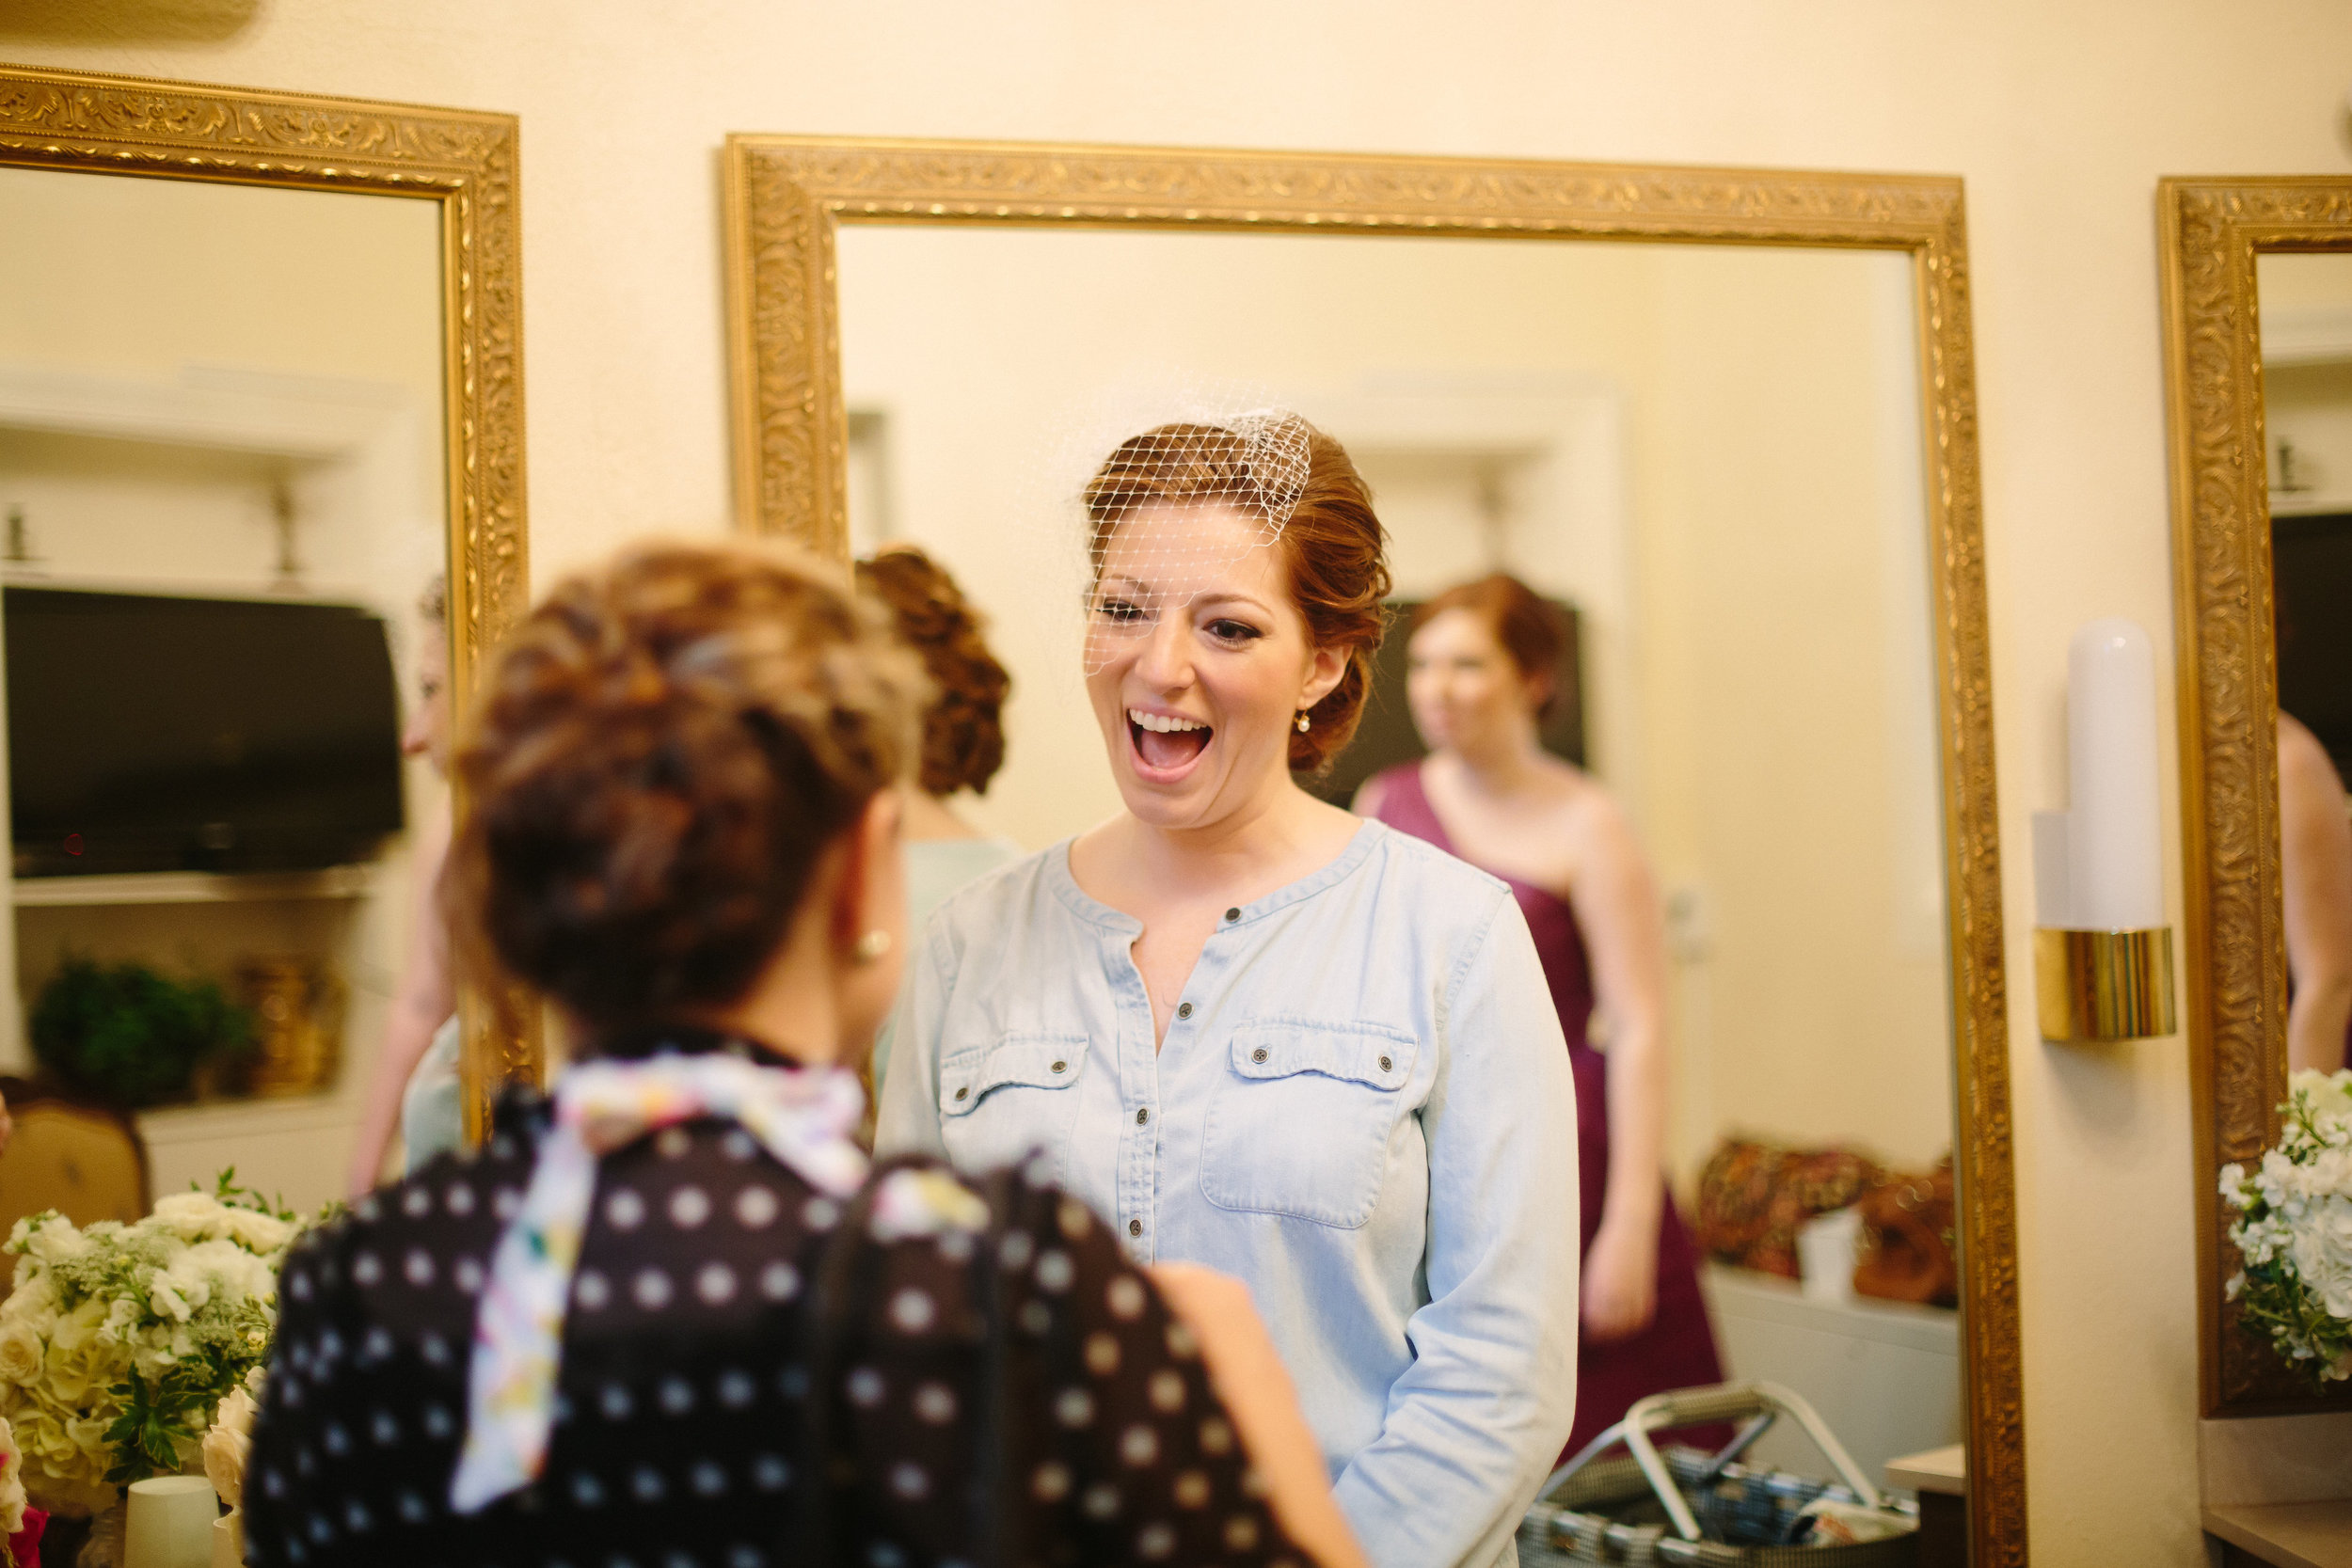 Sidenote: I live for this moment when brides look excited for their flowers!